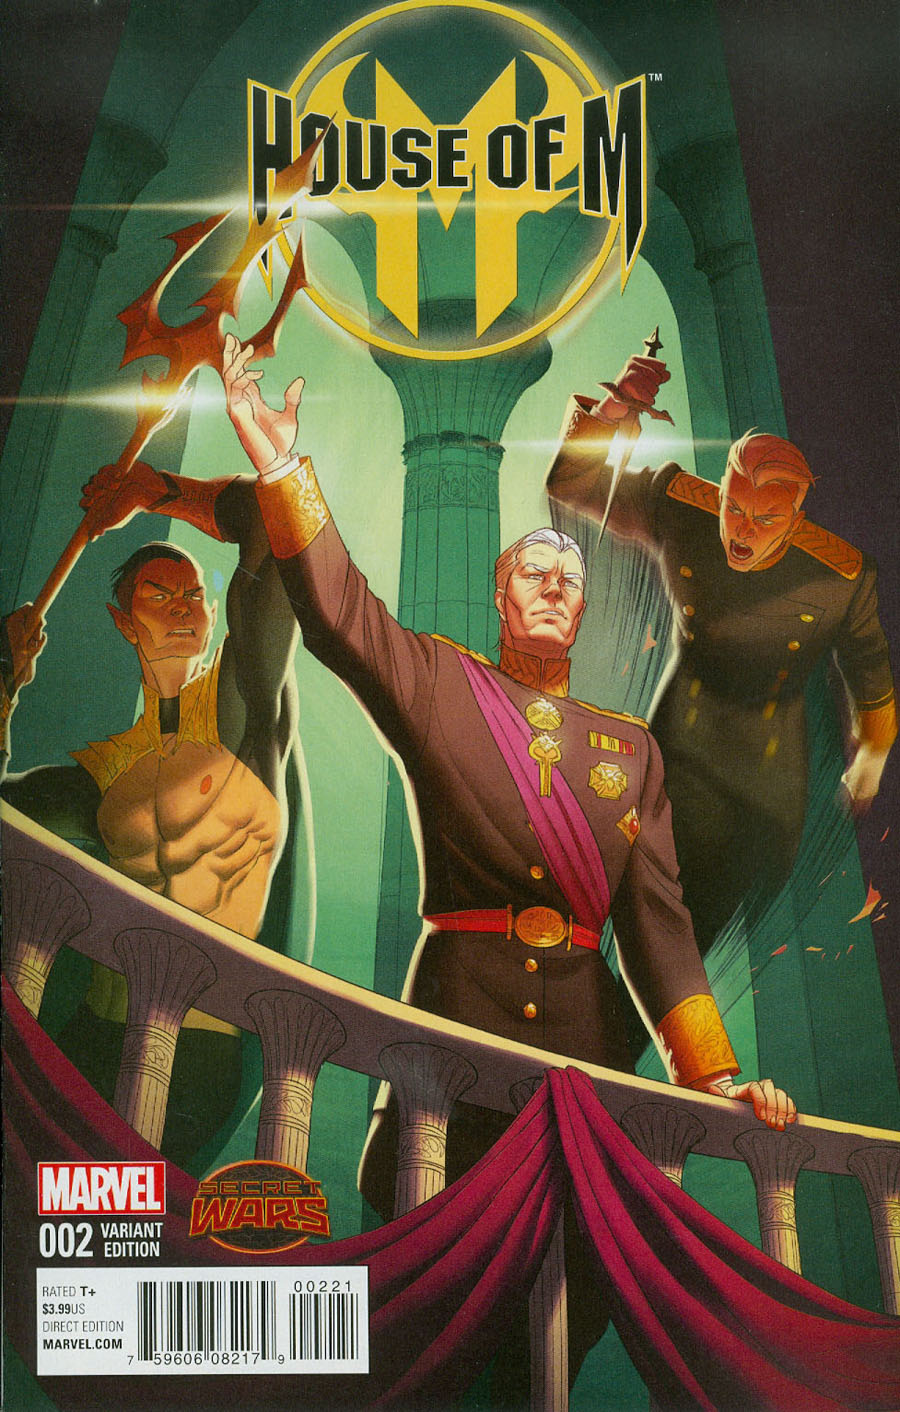 House Of M Vol 2 #2 Cover B Incentive Variant Cover (Secret Wars Warzones Tie-In)